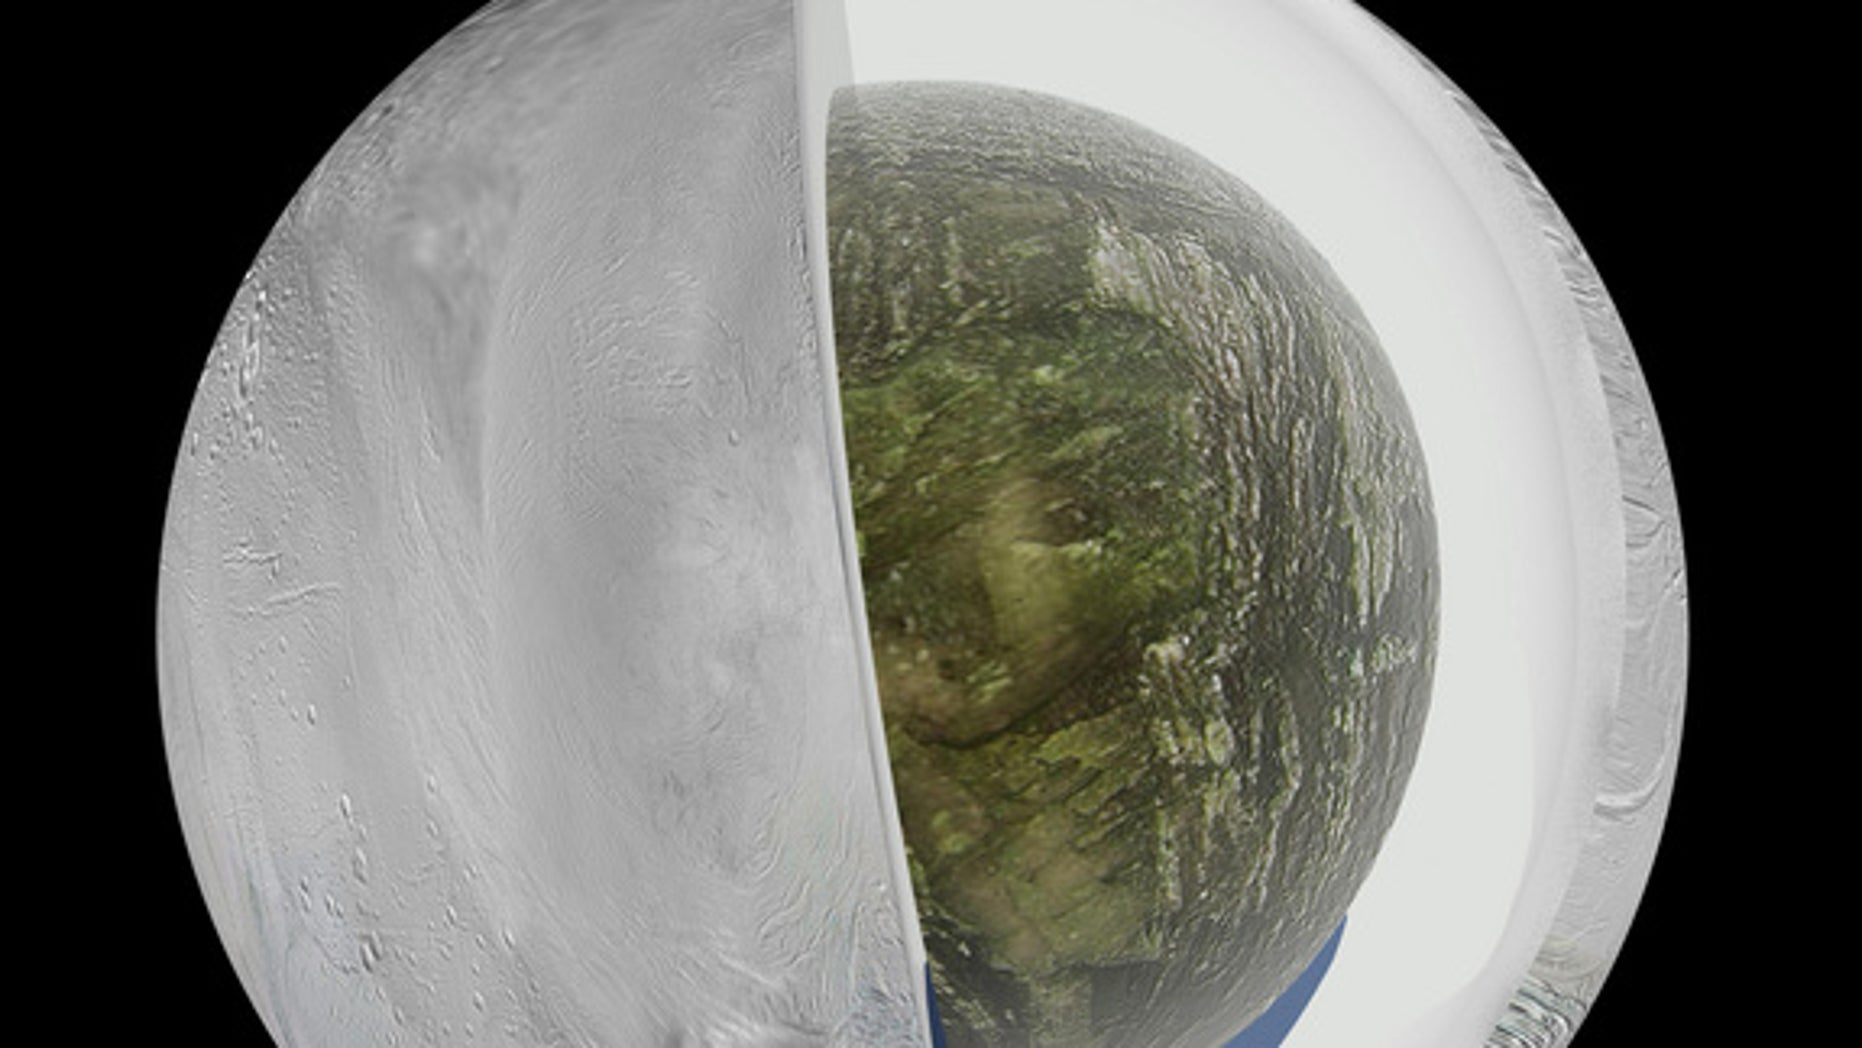 This illustration shows the possible interior of the Saturn moon Enceladus. Data gathered by NASA's Cassini probe suggests Enceladus has an ice outer shell and a rocky core with a regional water ocean sandwiched in between at high southern lati